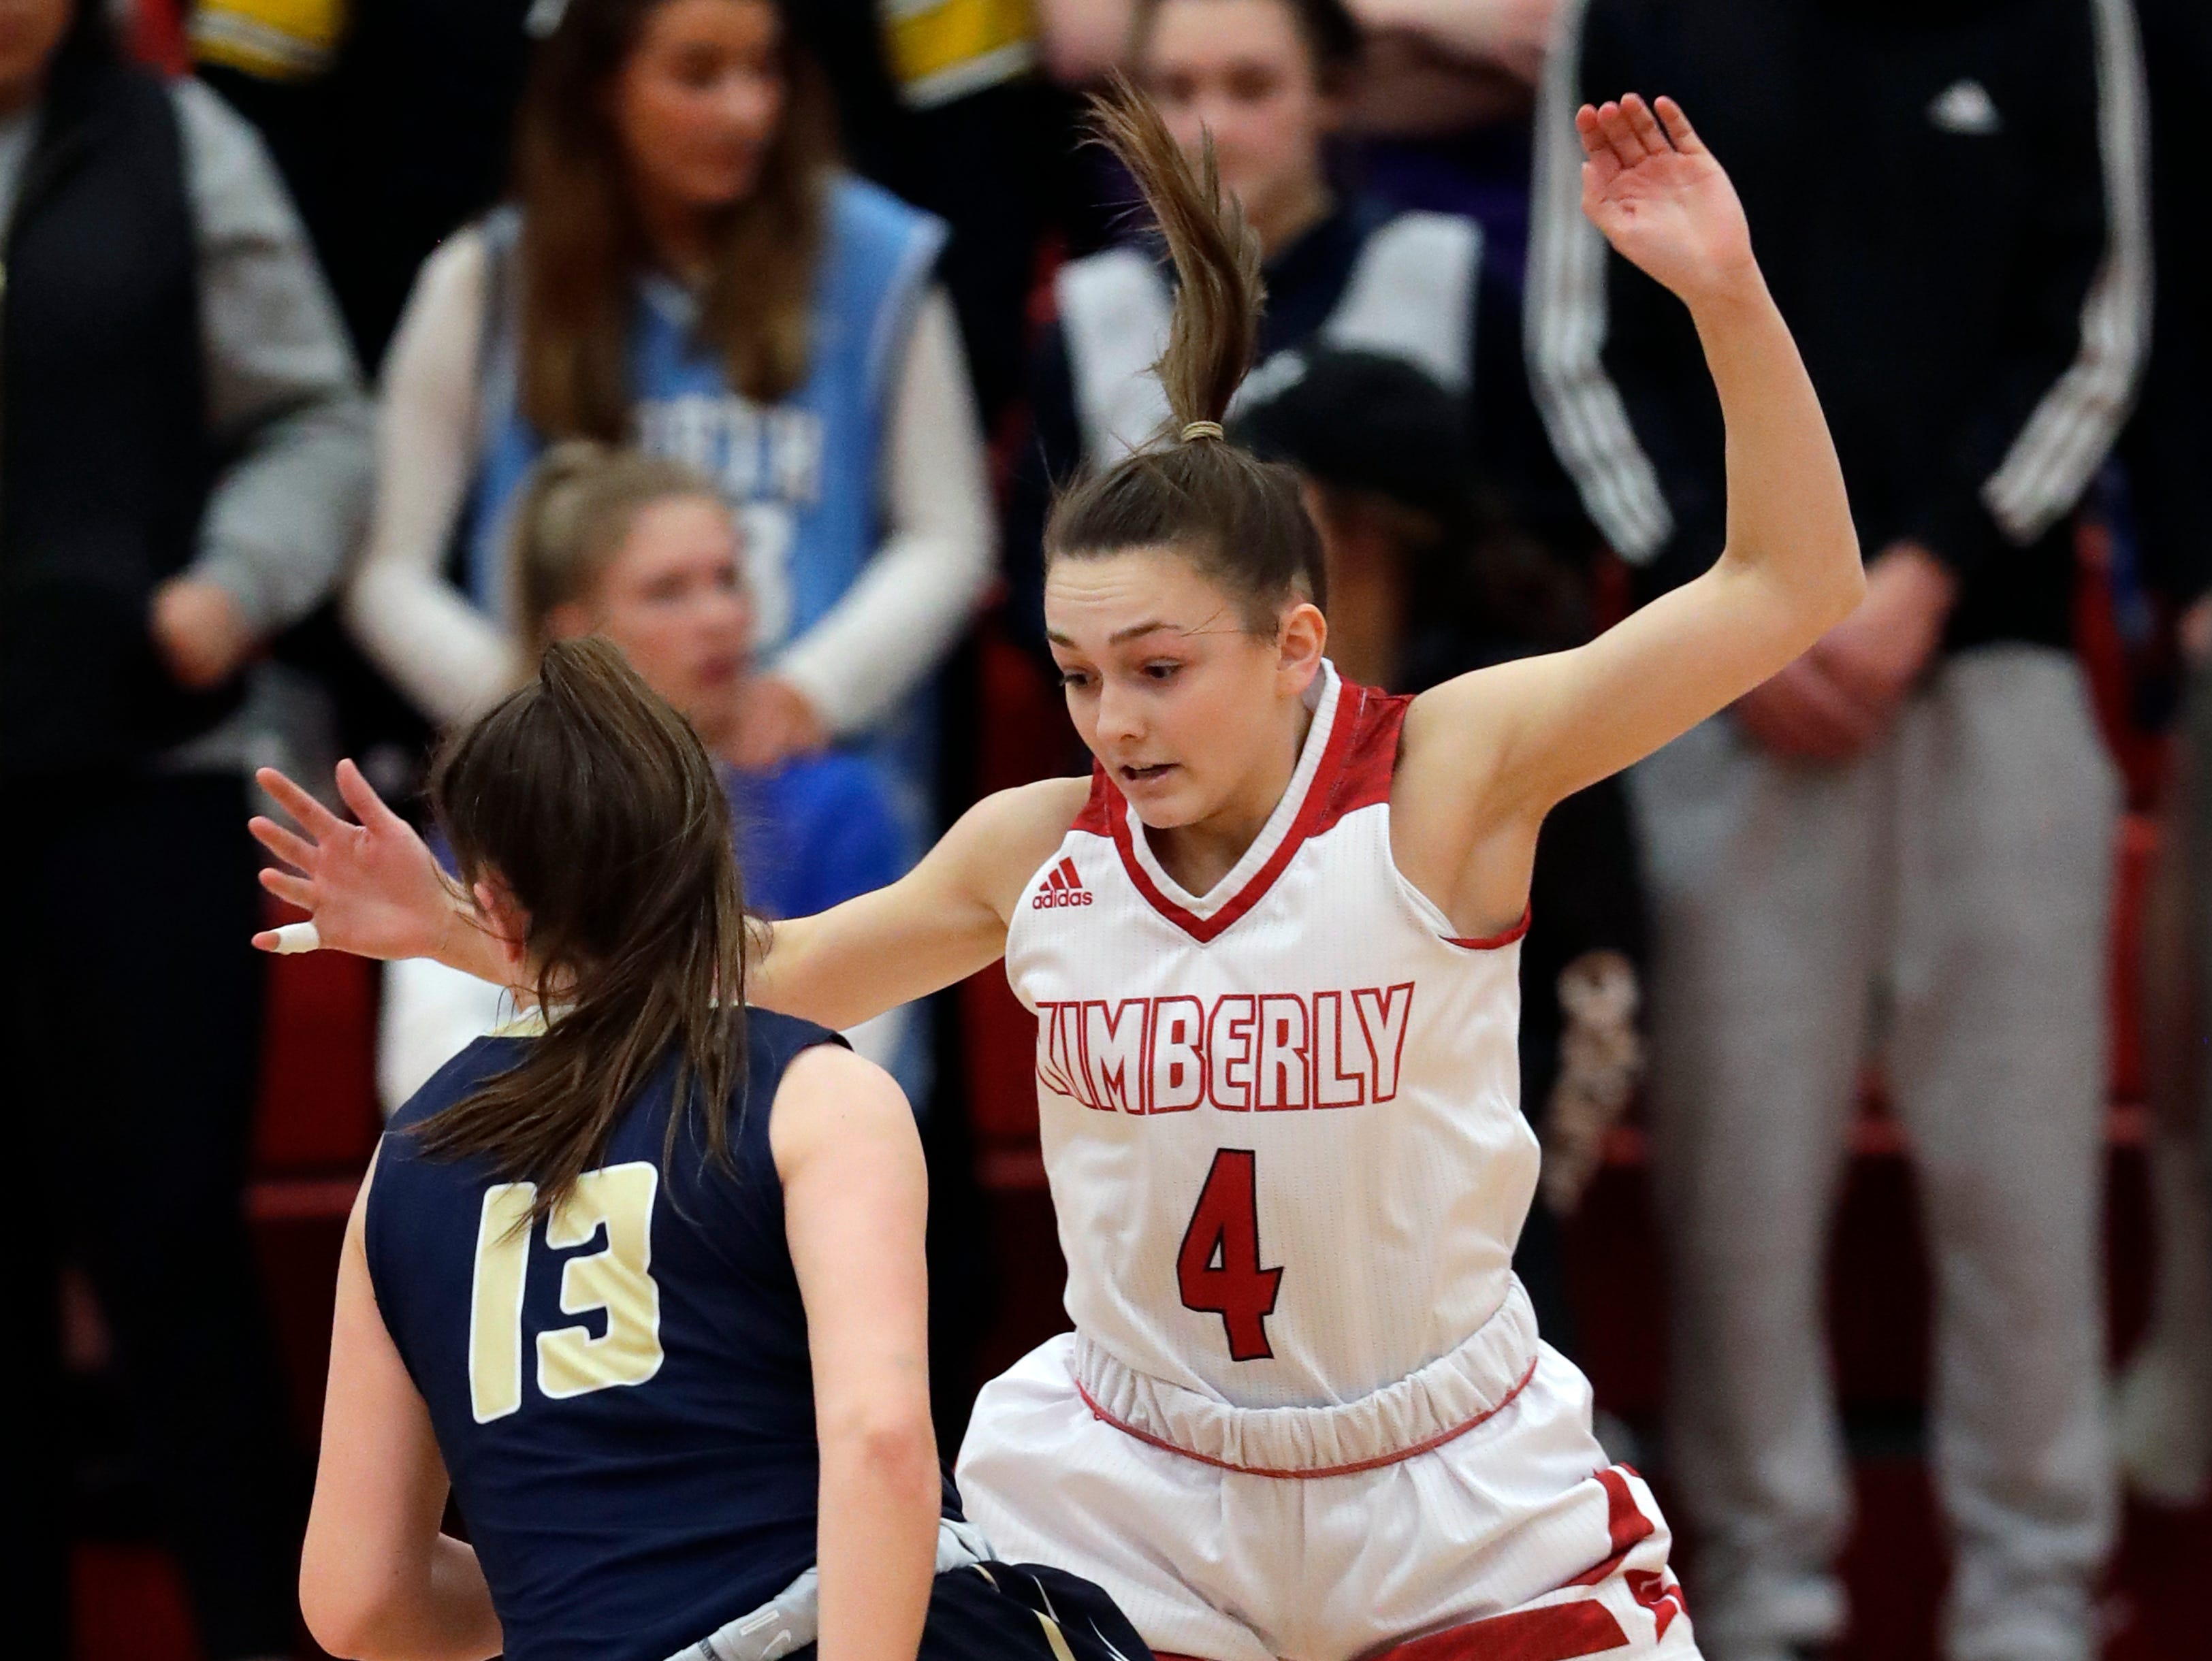 Kimberly High School's Hailey Rupnow (4) defends against Appleton North High School's Maggie Cartwright (13) during their girls basketball game Monday, February 11, 2019, in Kimberly, Wis. Dan Powers/USA TODAY NETWORK-Wisconsin